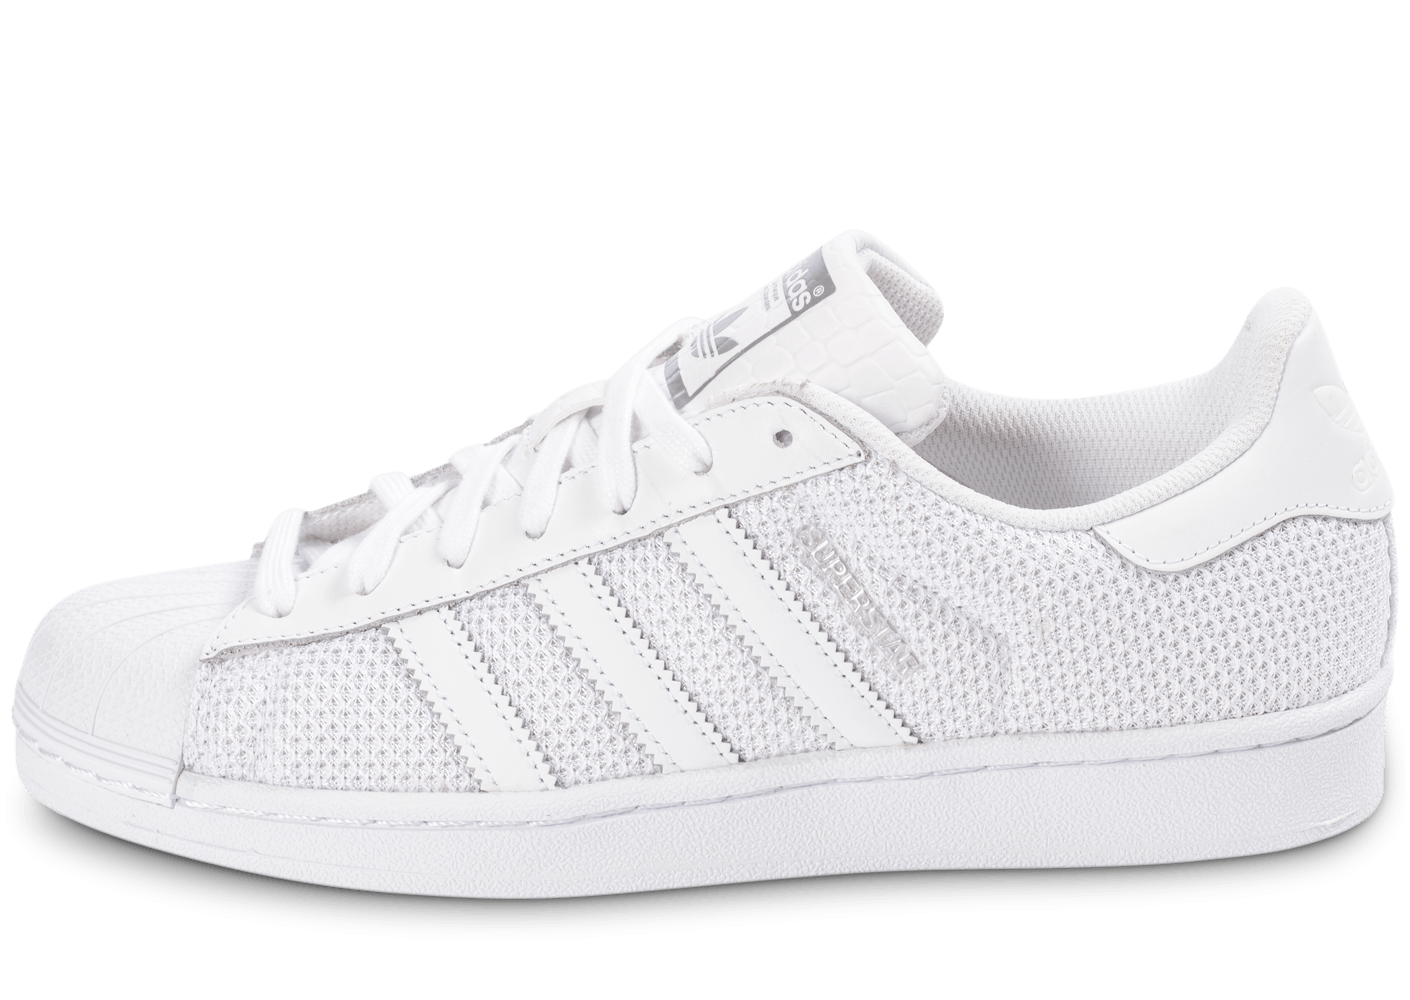 adidas superstar nylon blanche chaussures homme chausport. Black Bedroom Furniture Sets. Home Design Ideas